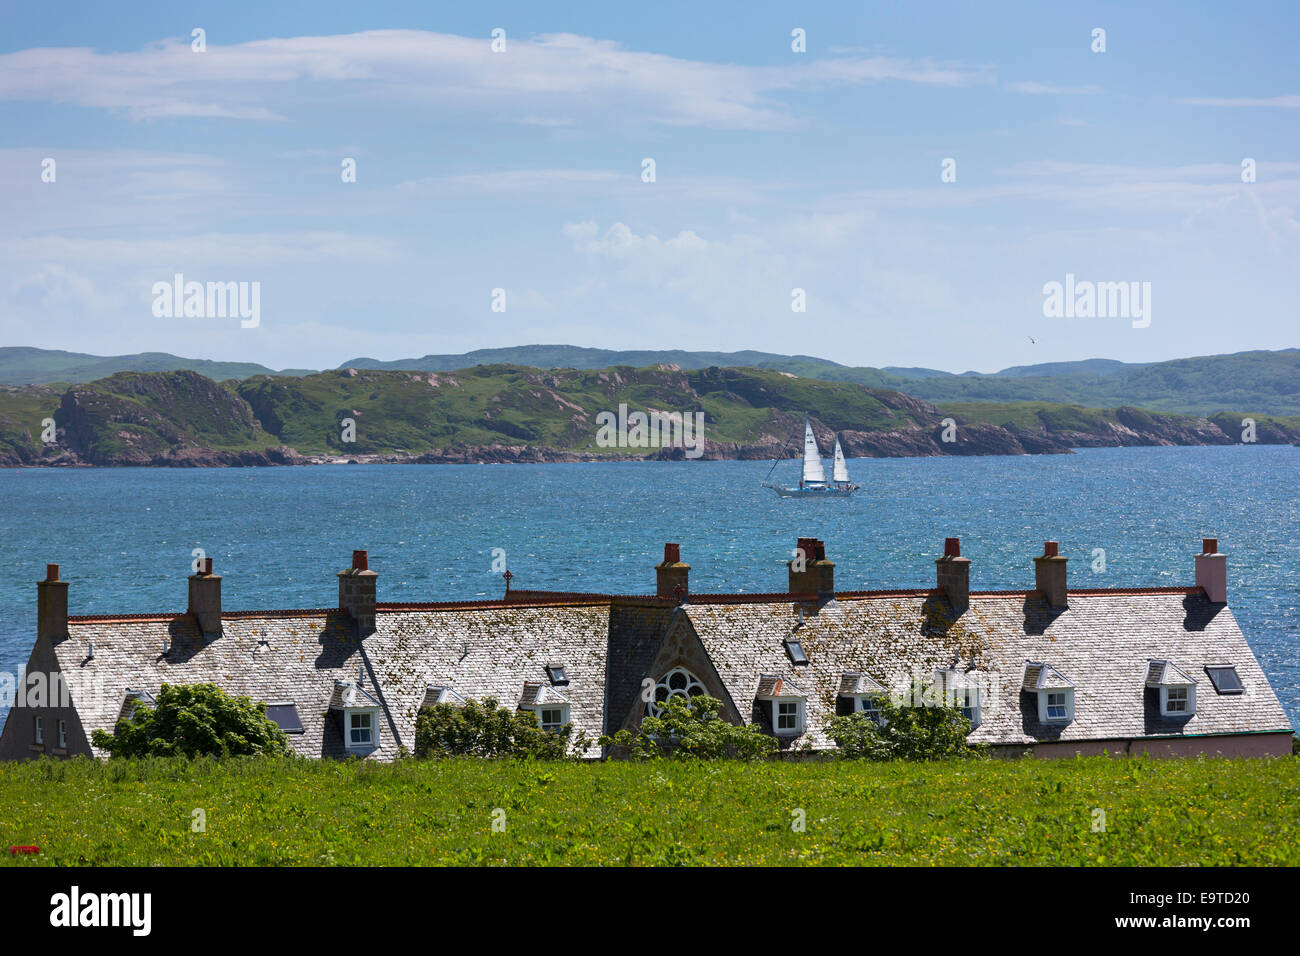 Sailboat passing rooftops of homes on Isle of Iona in the Inner Hebrides and Western Isles, West Coast of SCOTLAND - Stock Image